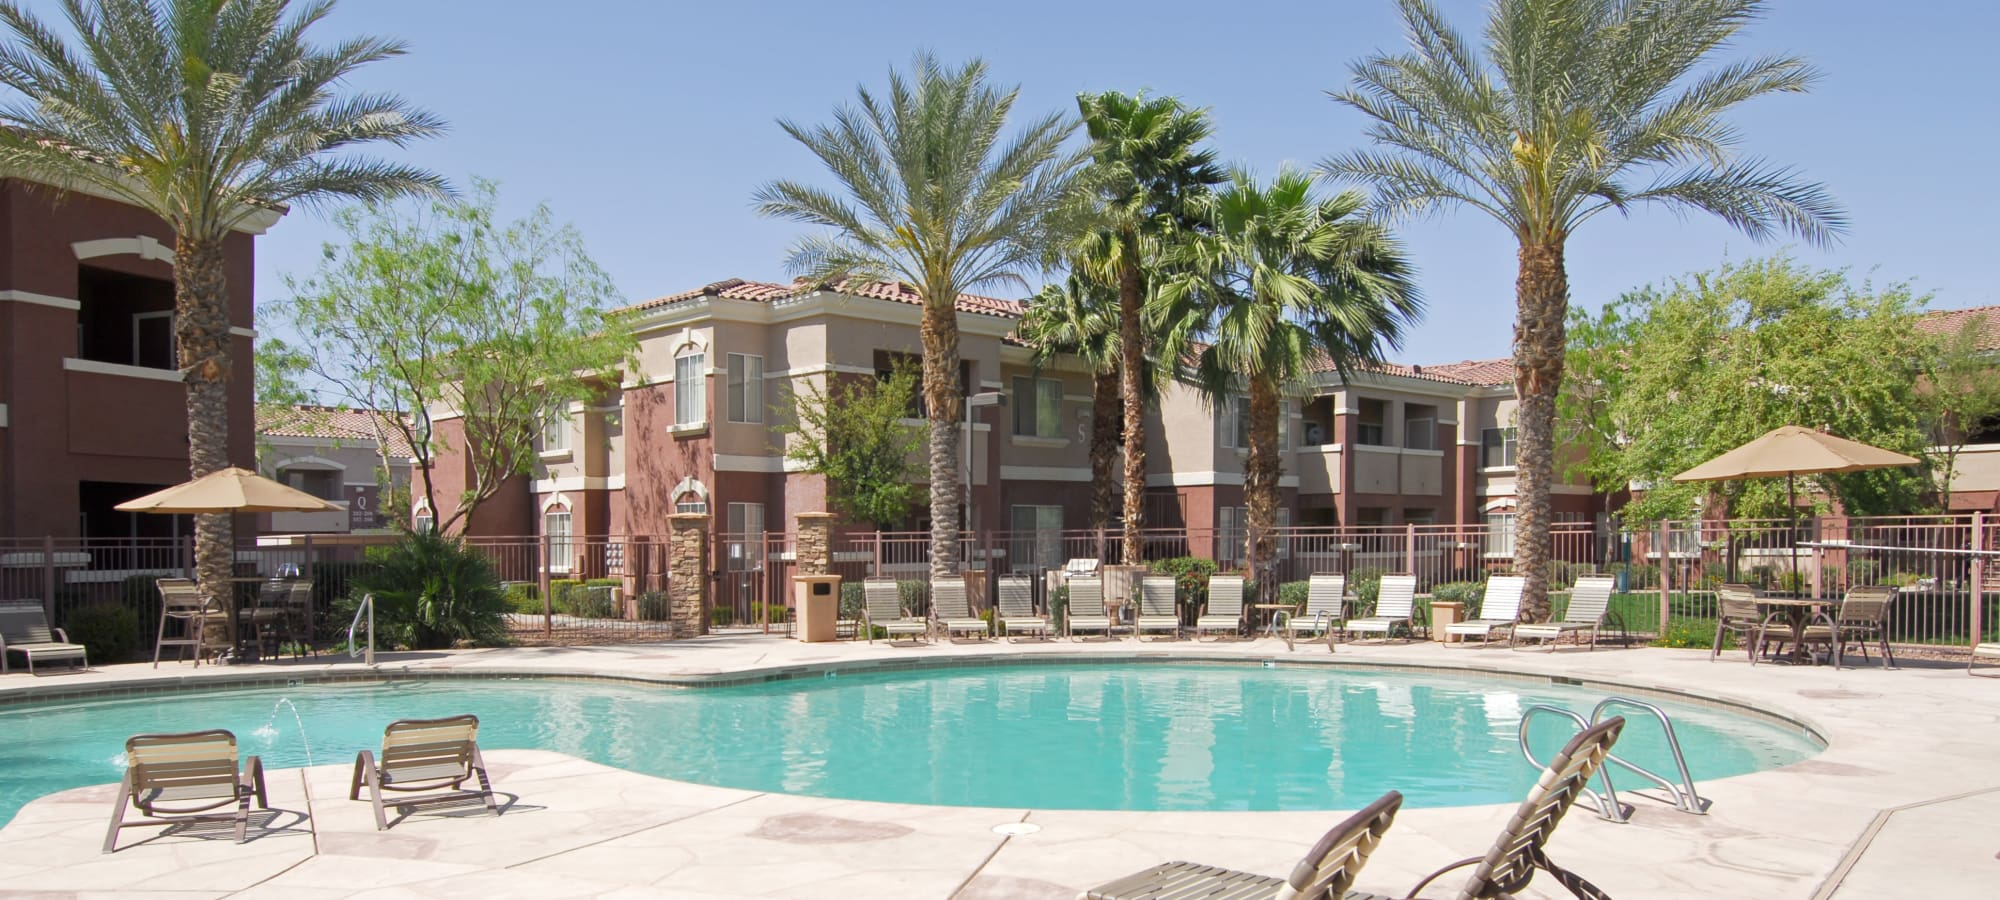 State-of-the-art swimming pool with lounge chairs at Remington Ranch in Litchfield Park, Arizona